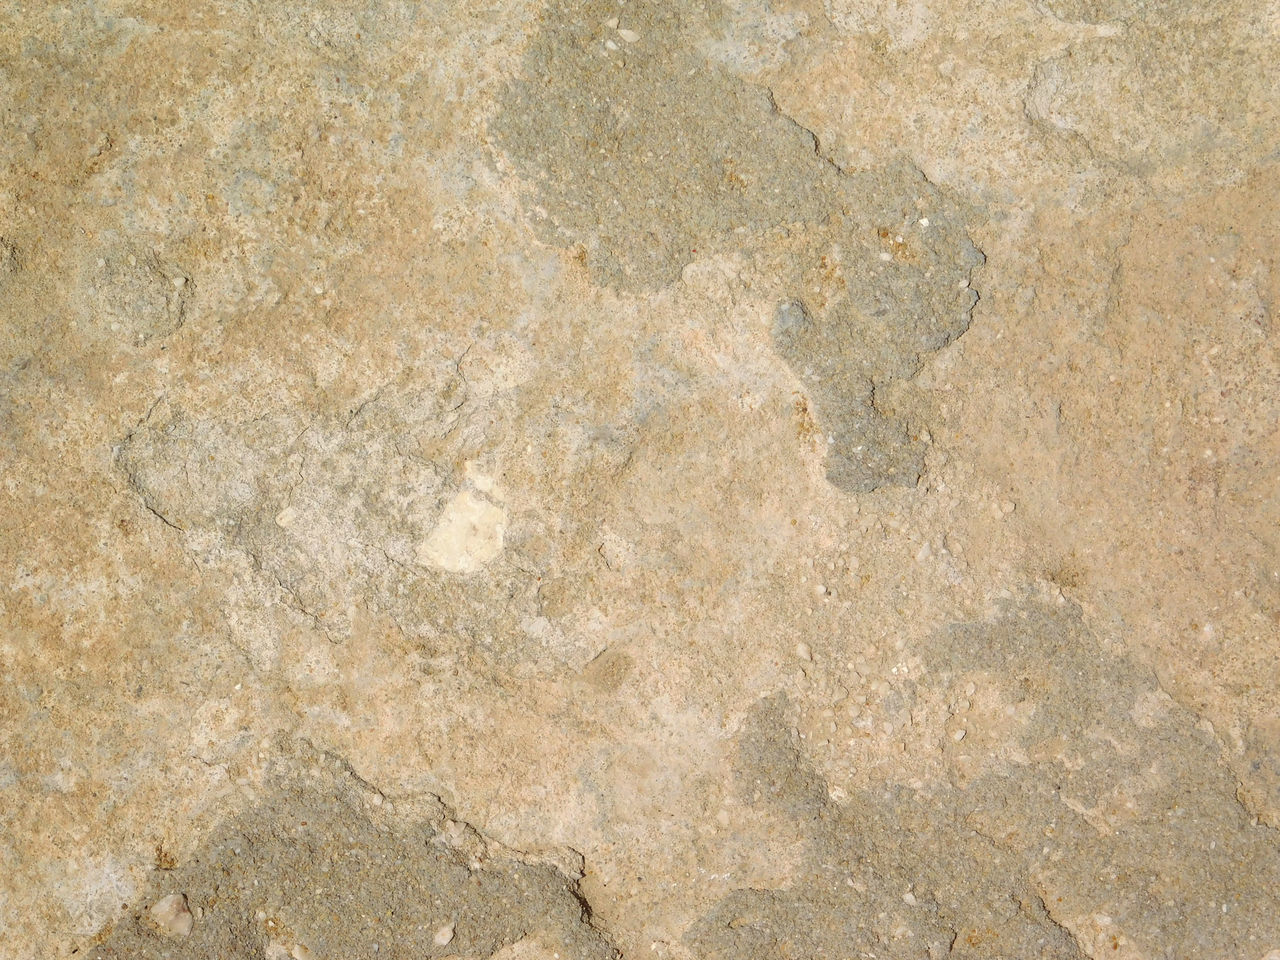 Stone texture Abstract Architecture Backgrounds Close-up Colored Background Day Full Frame Marble Material Nature No People Pattern Rock - Object Smooth Stone - Object Stone Material Textured  Wallpaper